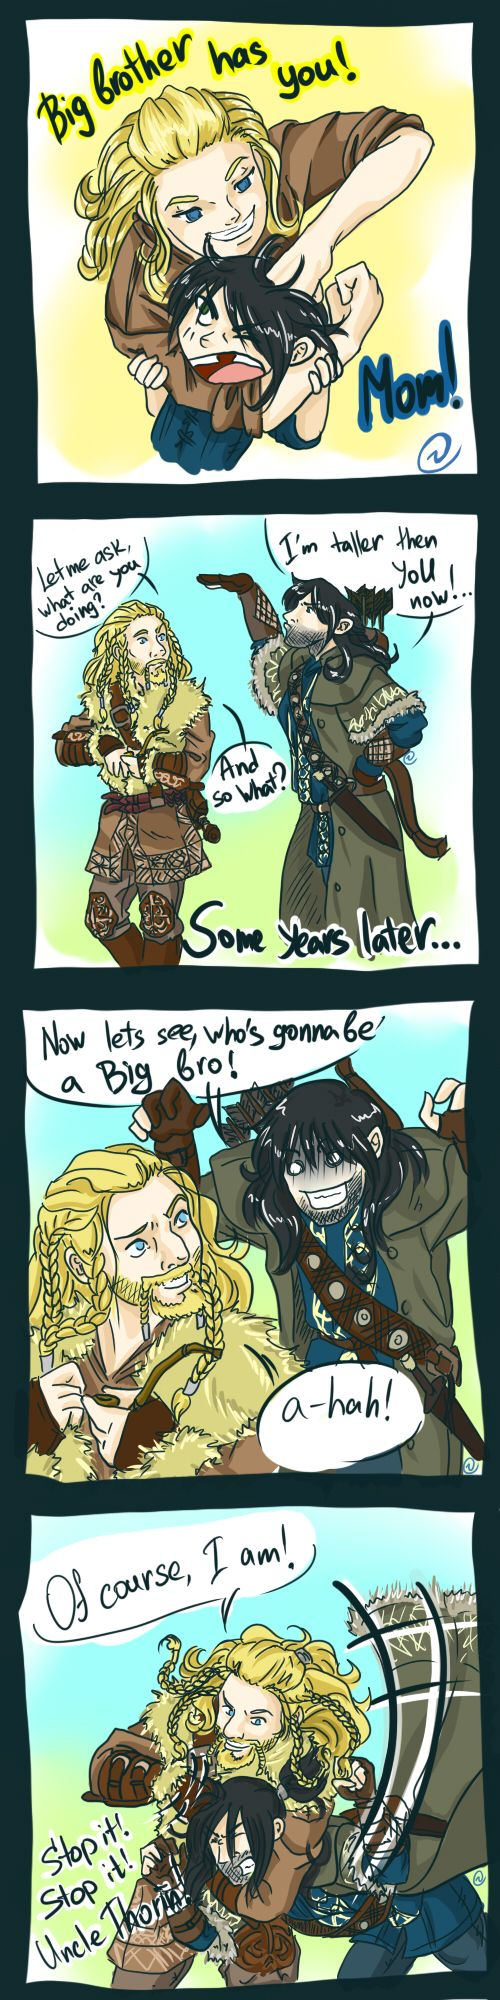 Who's a BIG bro now by red-eye-girl.deviantart.com on @deviantART